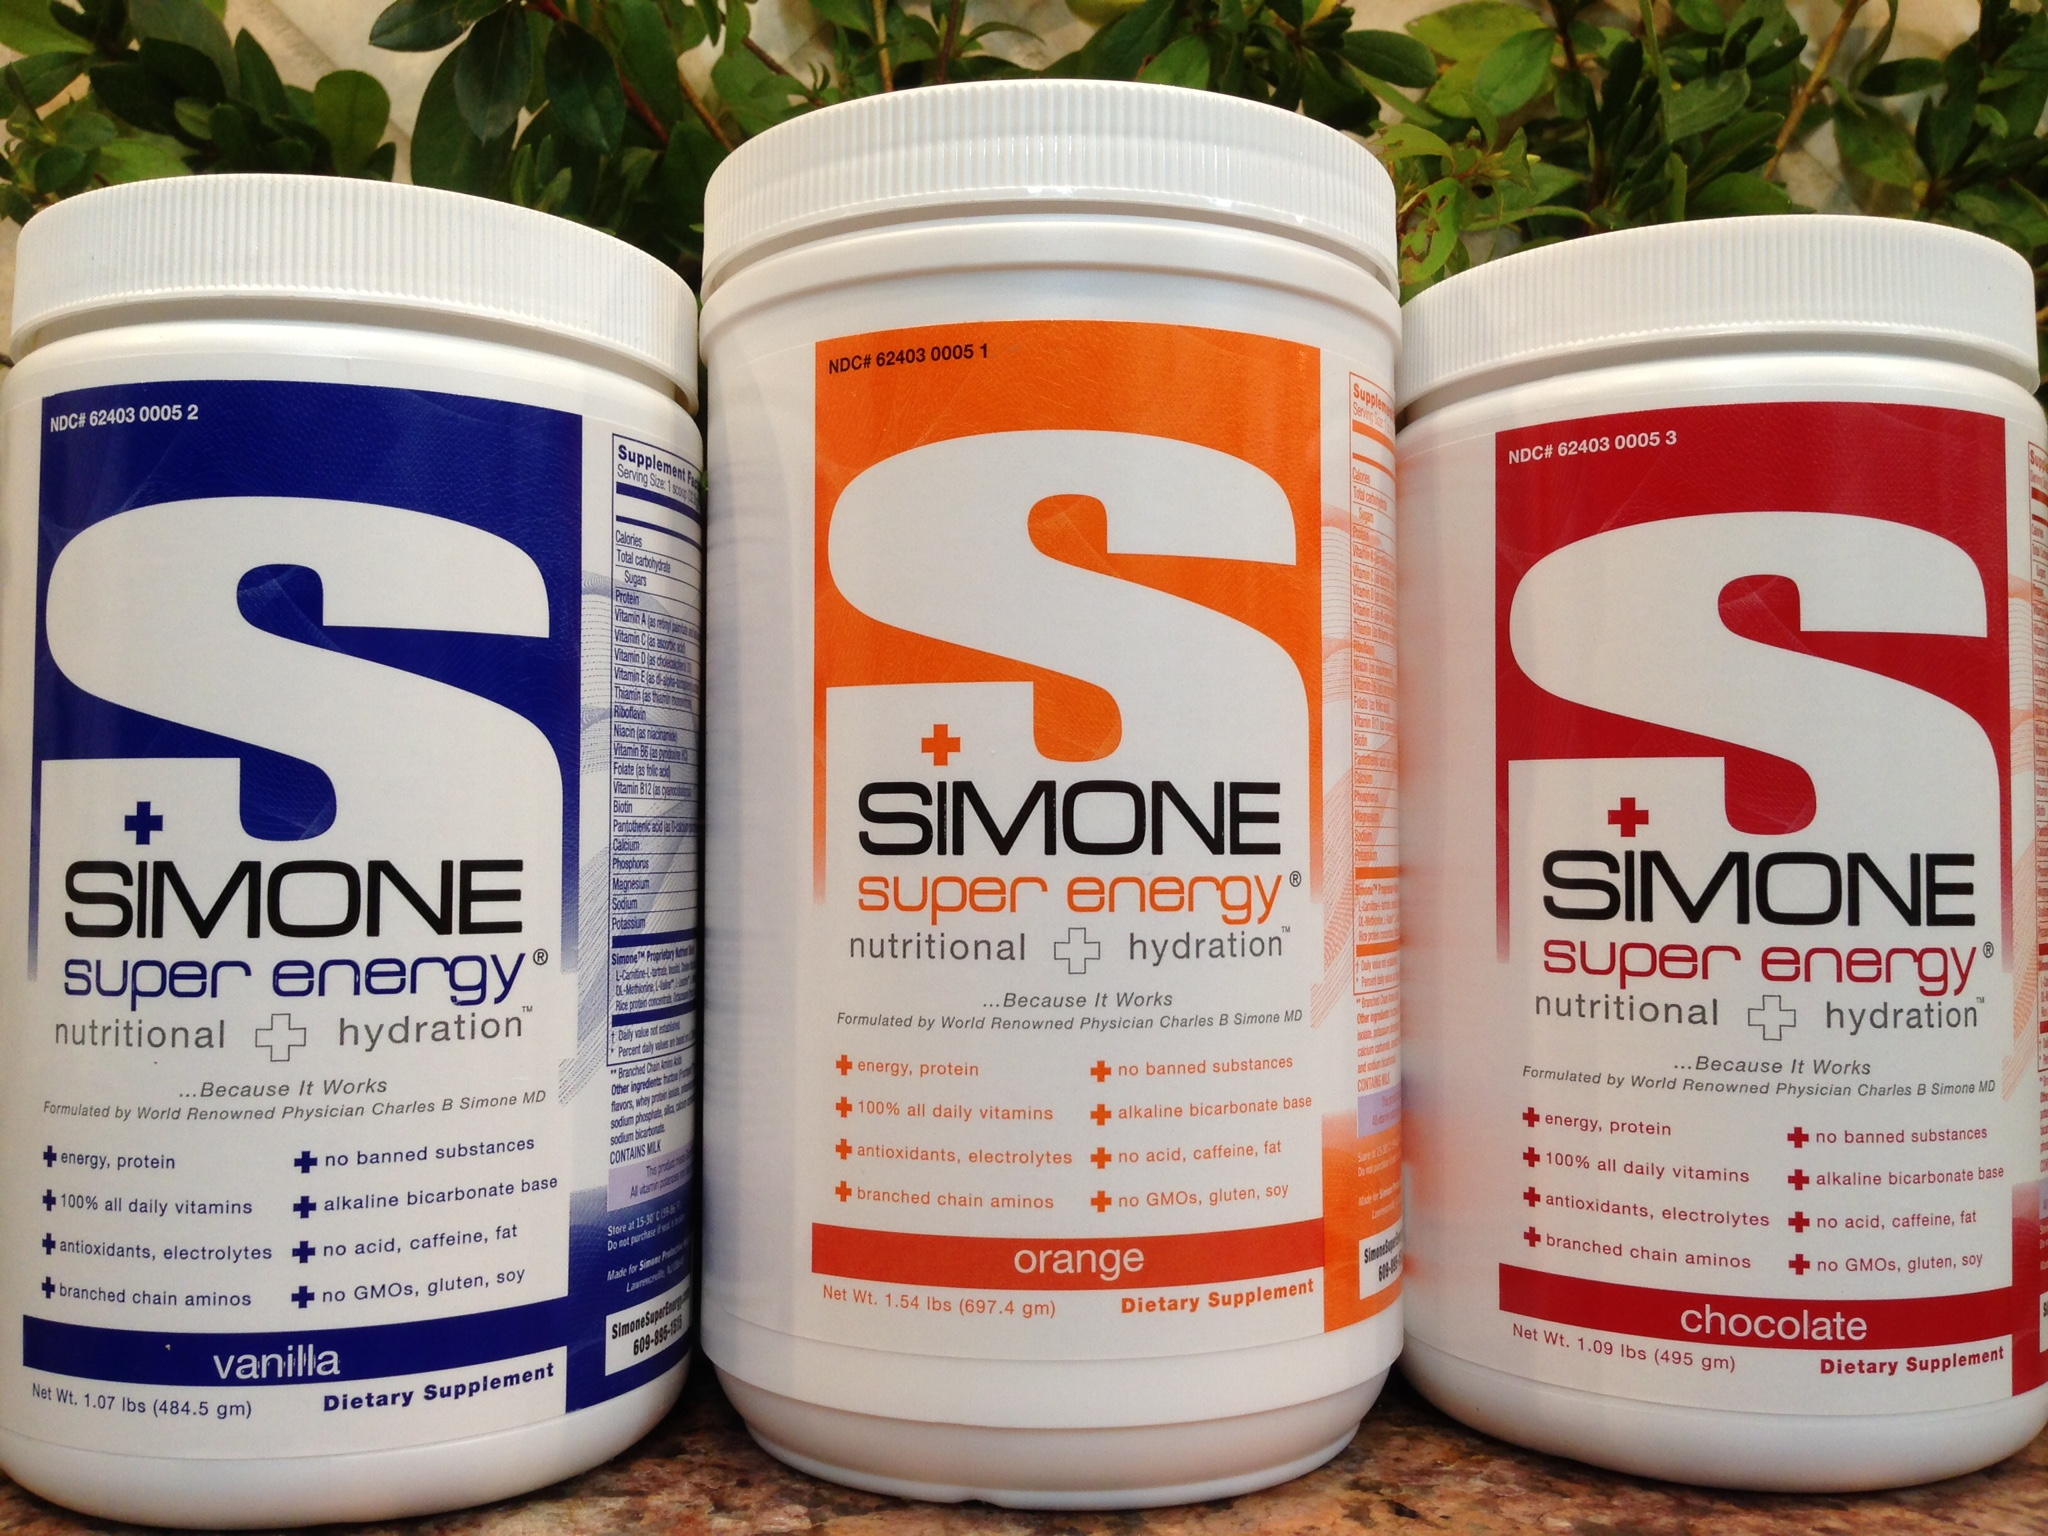 …. So Did SIMONE SUPER ENERGY Patented Formula